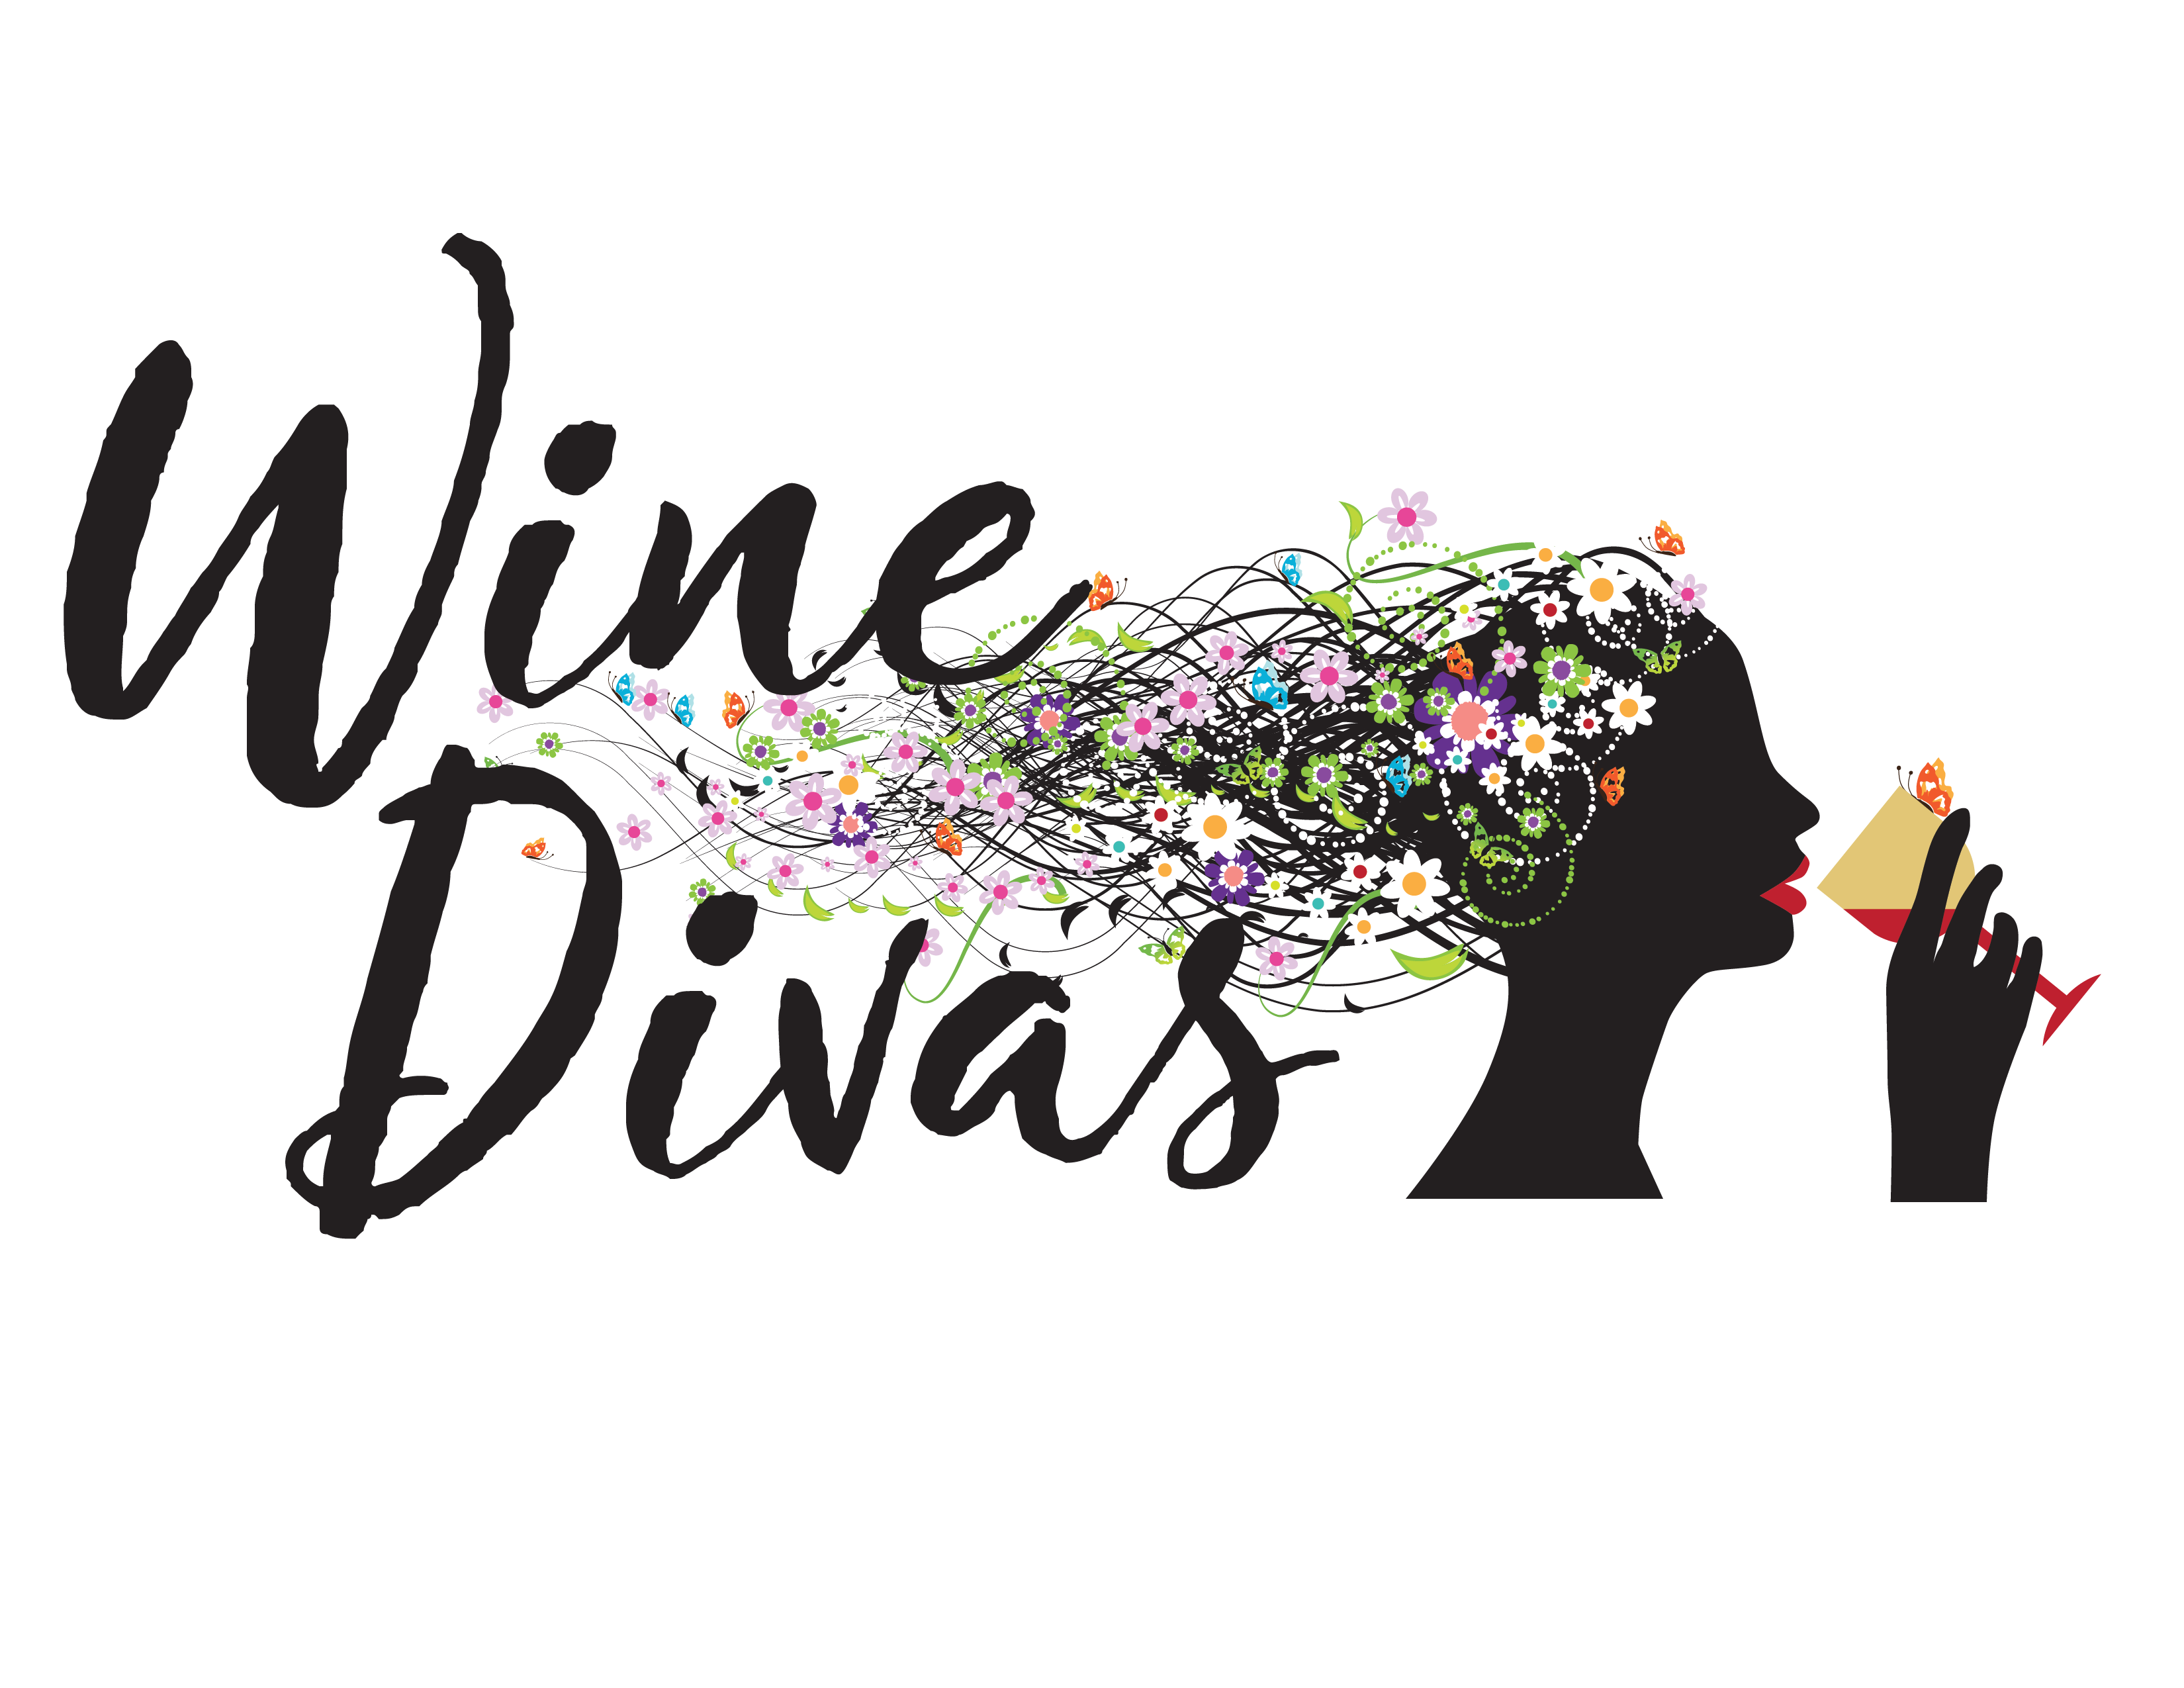 http://uncorked.theeng.agency/wp-content/uploads/2019/04/Logo-01.png